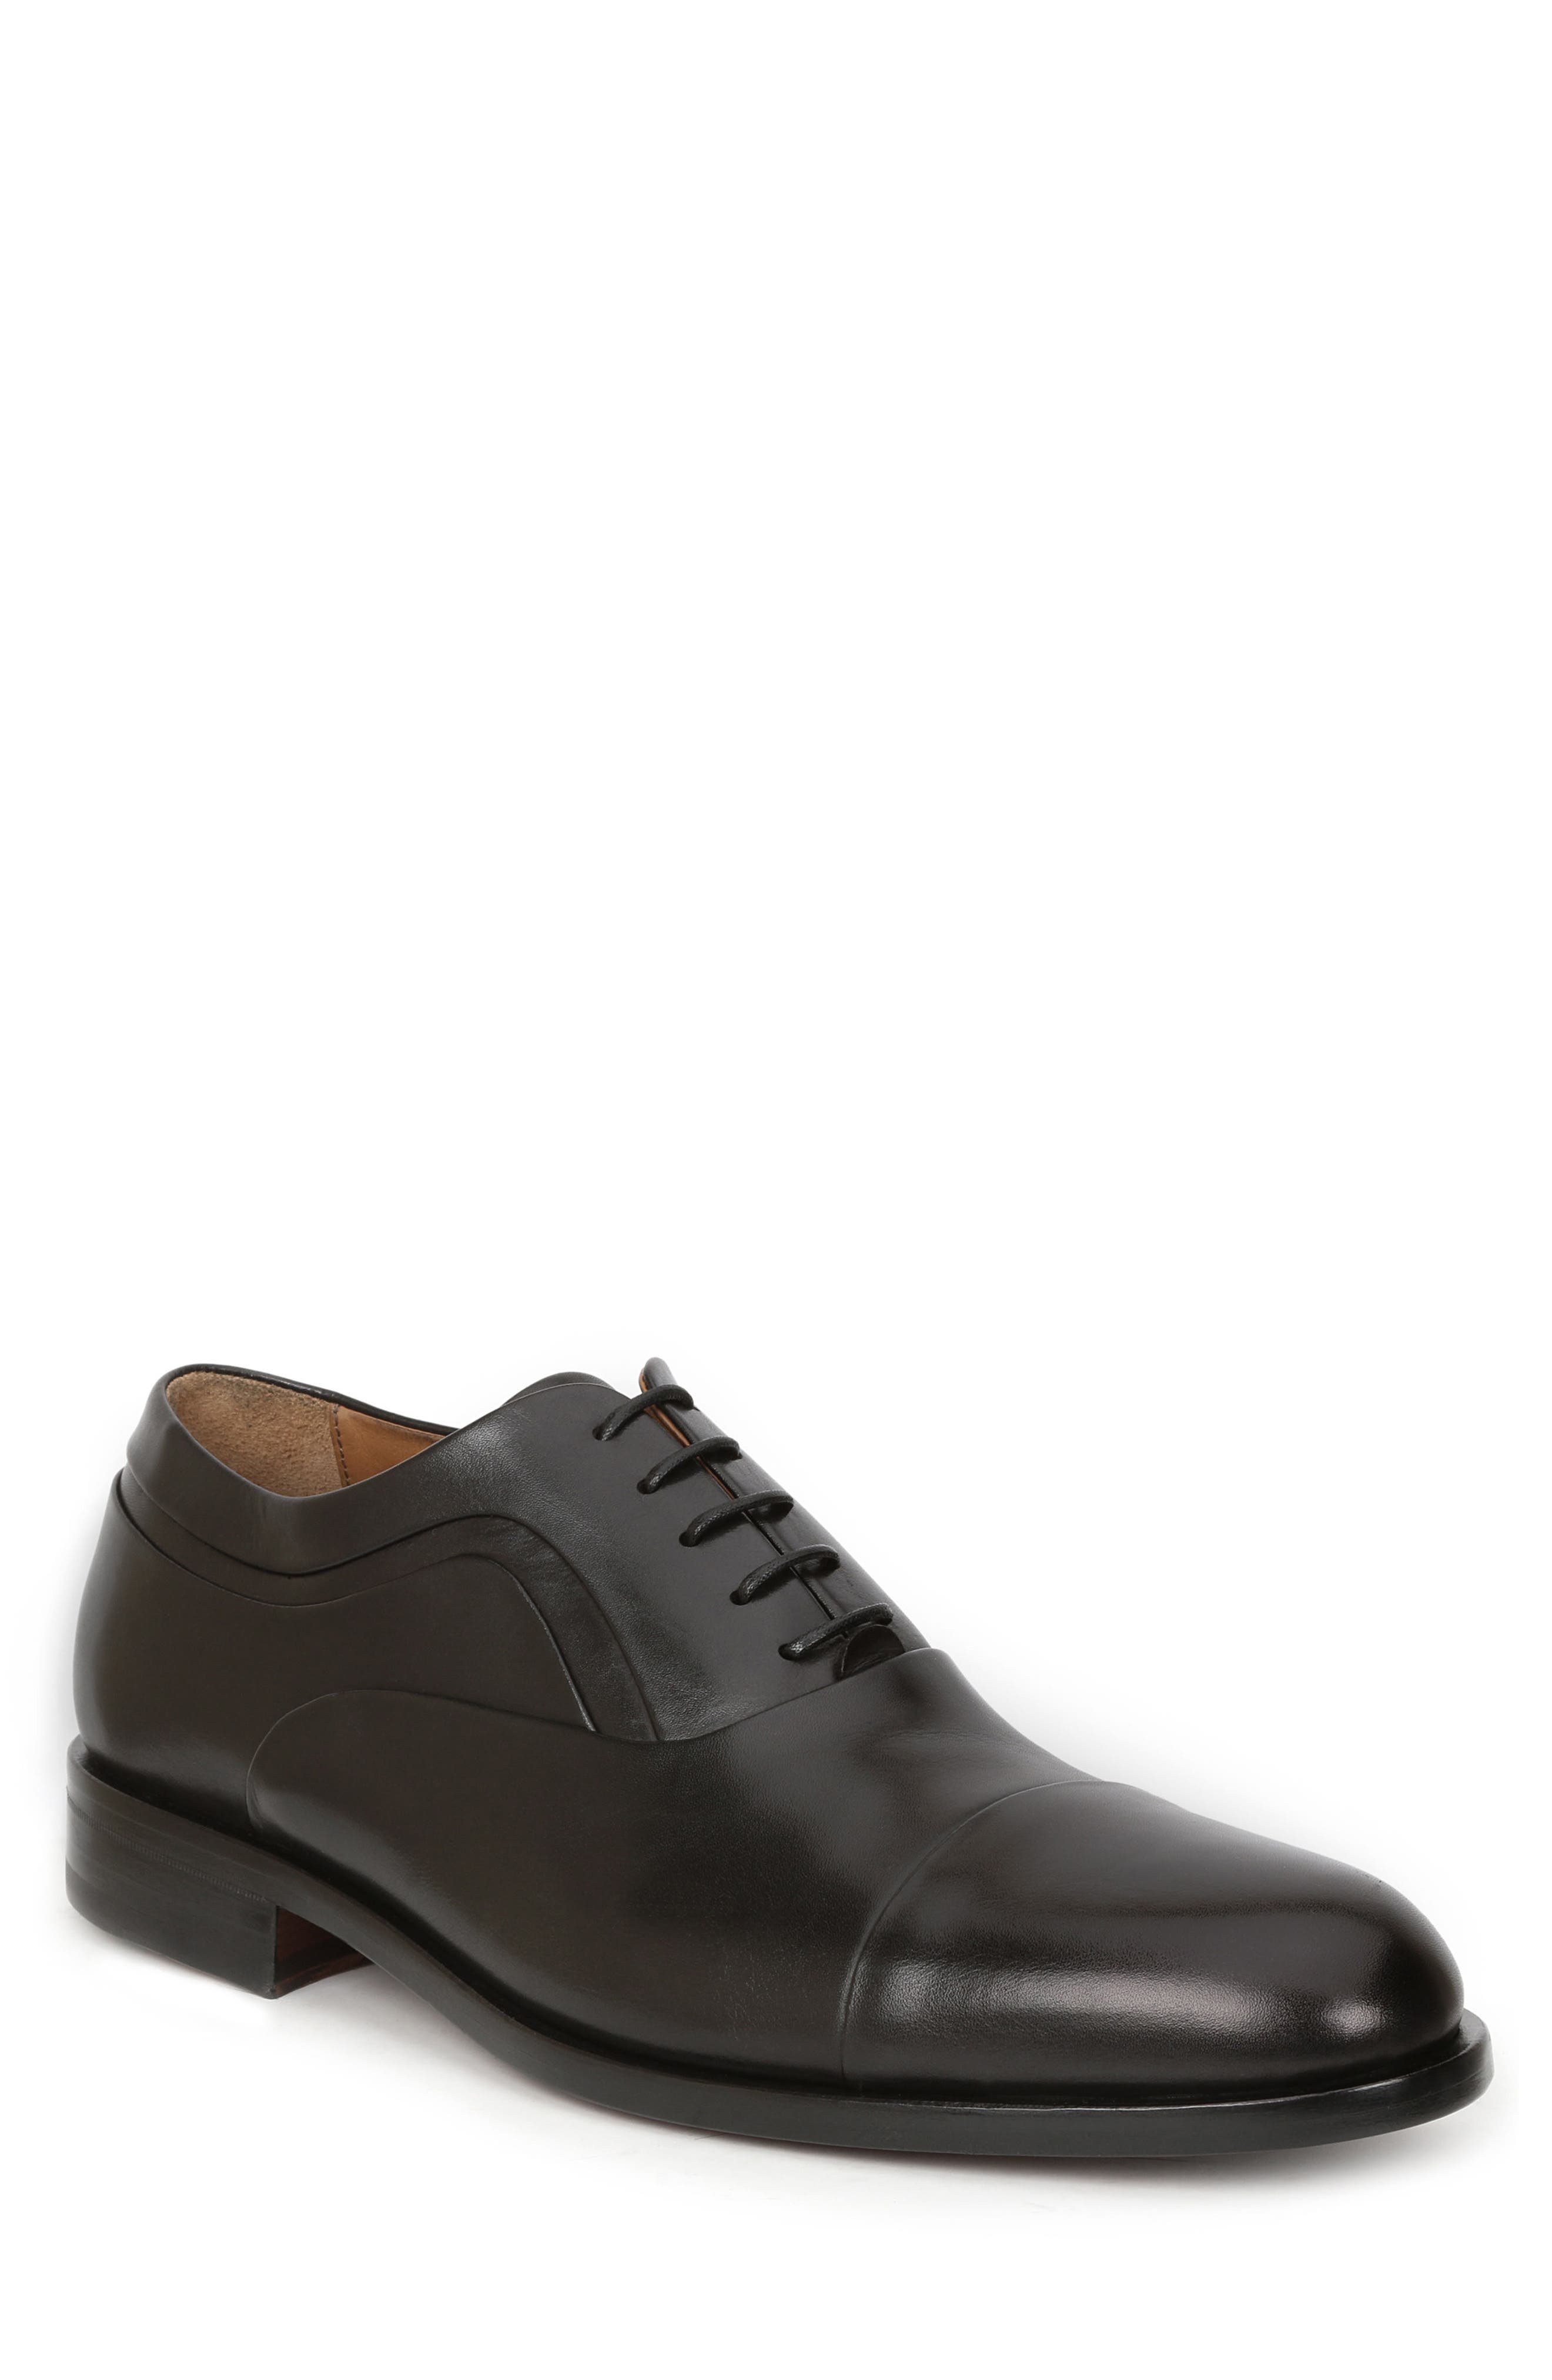 BRUNO MAGLI, Sassiolo Cap Toe Oxford, Main thumbnail 1, color, BLACK